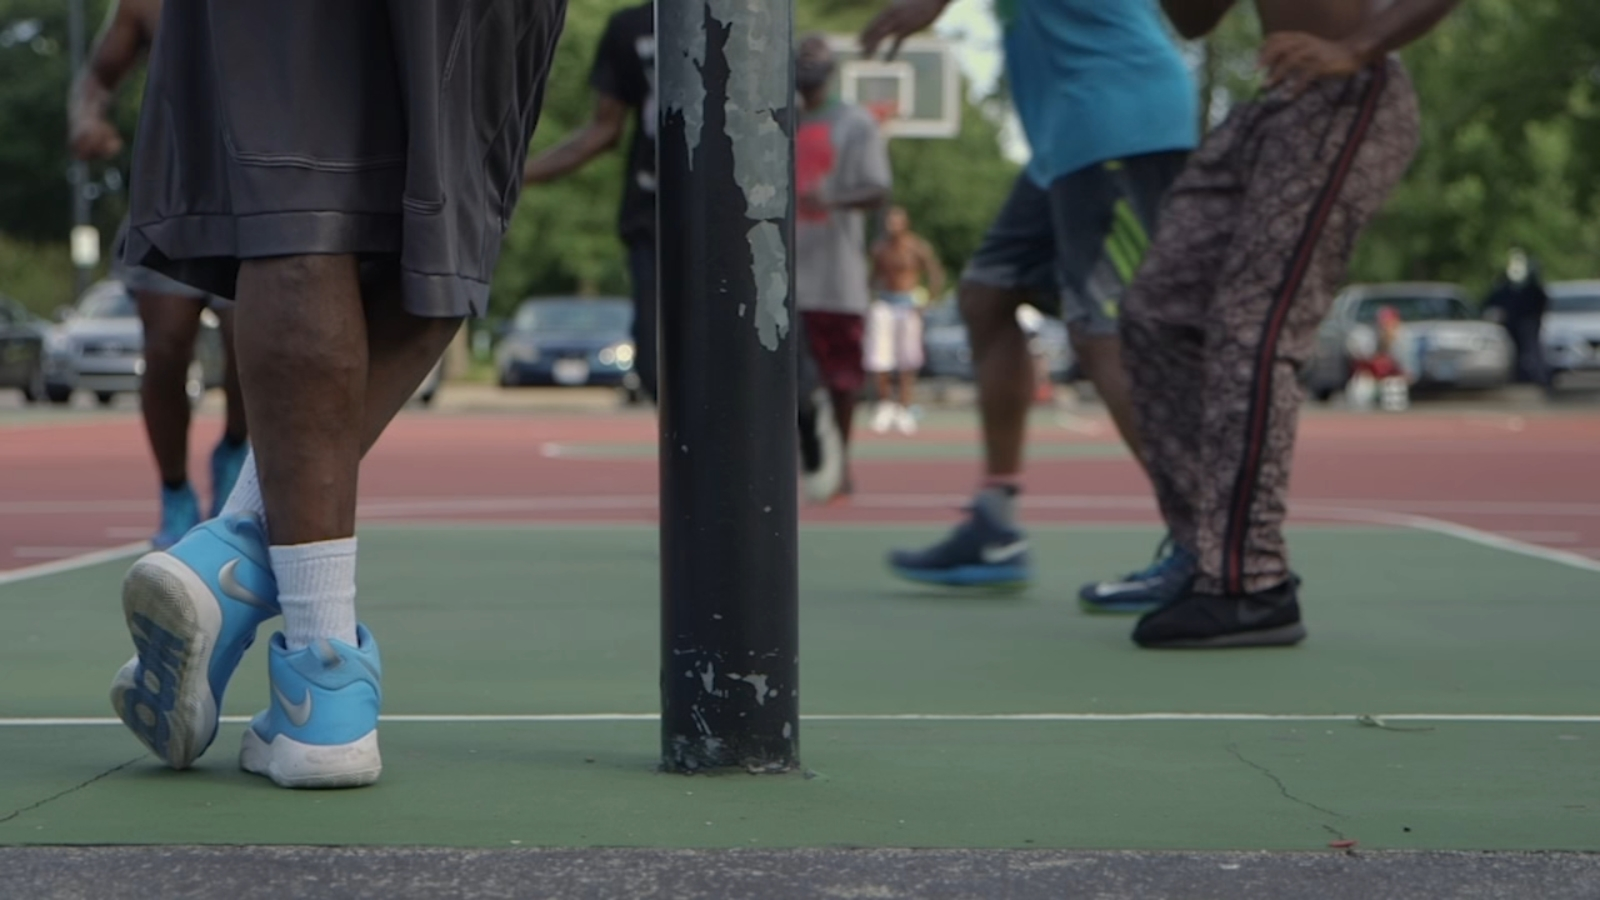 Ballin' on the South Side: Streetball at Chicago's legendary blacktop basketball courts